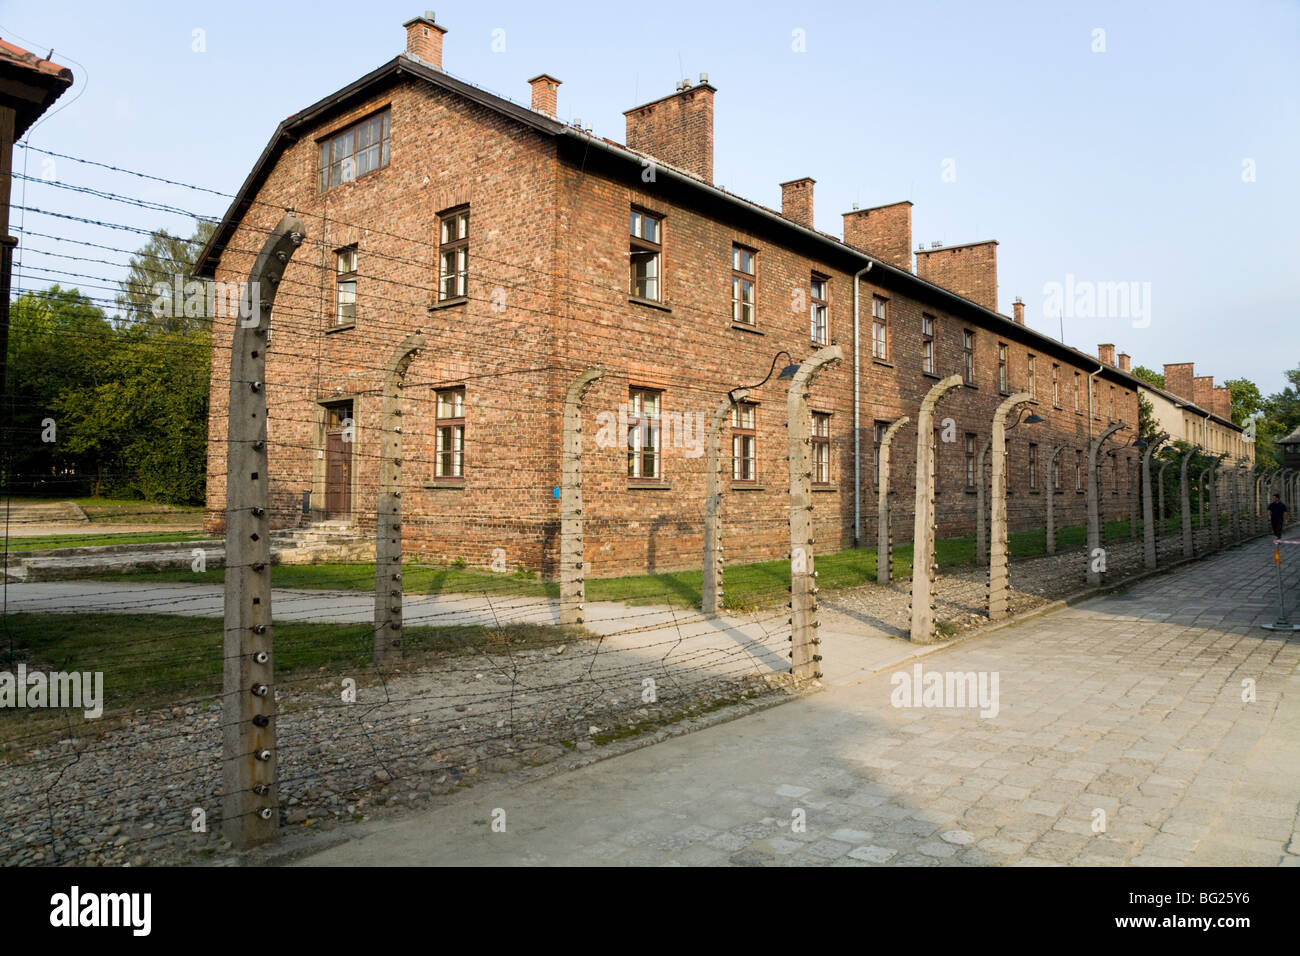 Camp administration block in barrack building outside the perimeter fence at the Auschwitz Nazi death camp in Oswiecim, - Stock Image